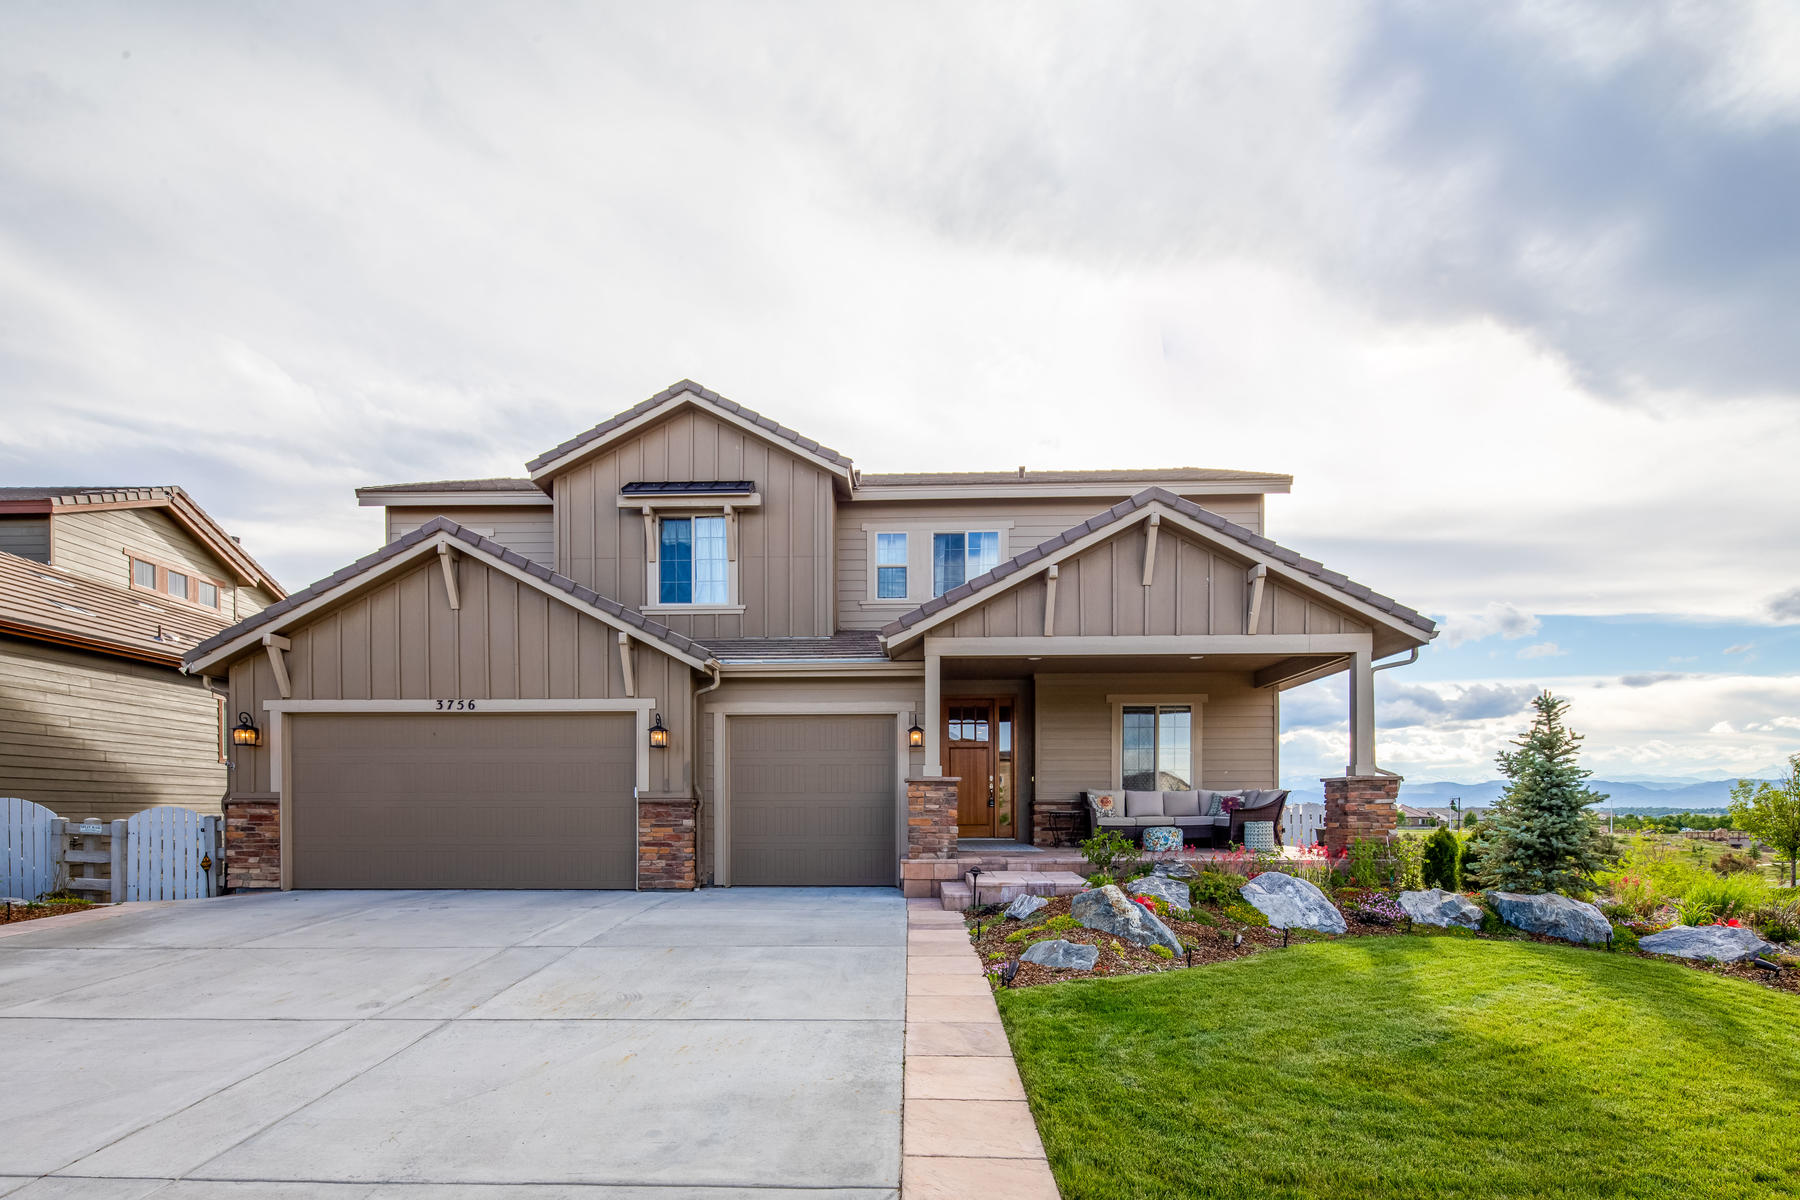 Single Family Homes for Sale at Surrounded by Spectacular Mountain & Lake Views 3756 Yale Drive Broomfield, Colorado 80023 United States